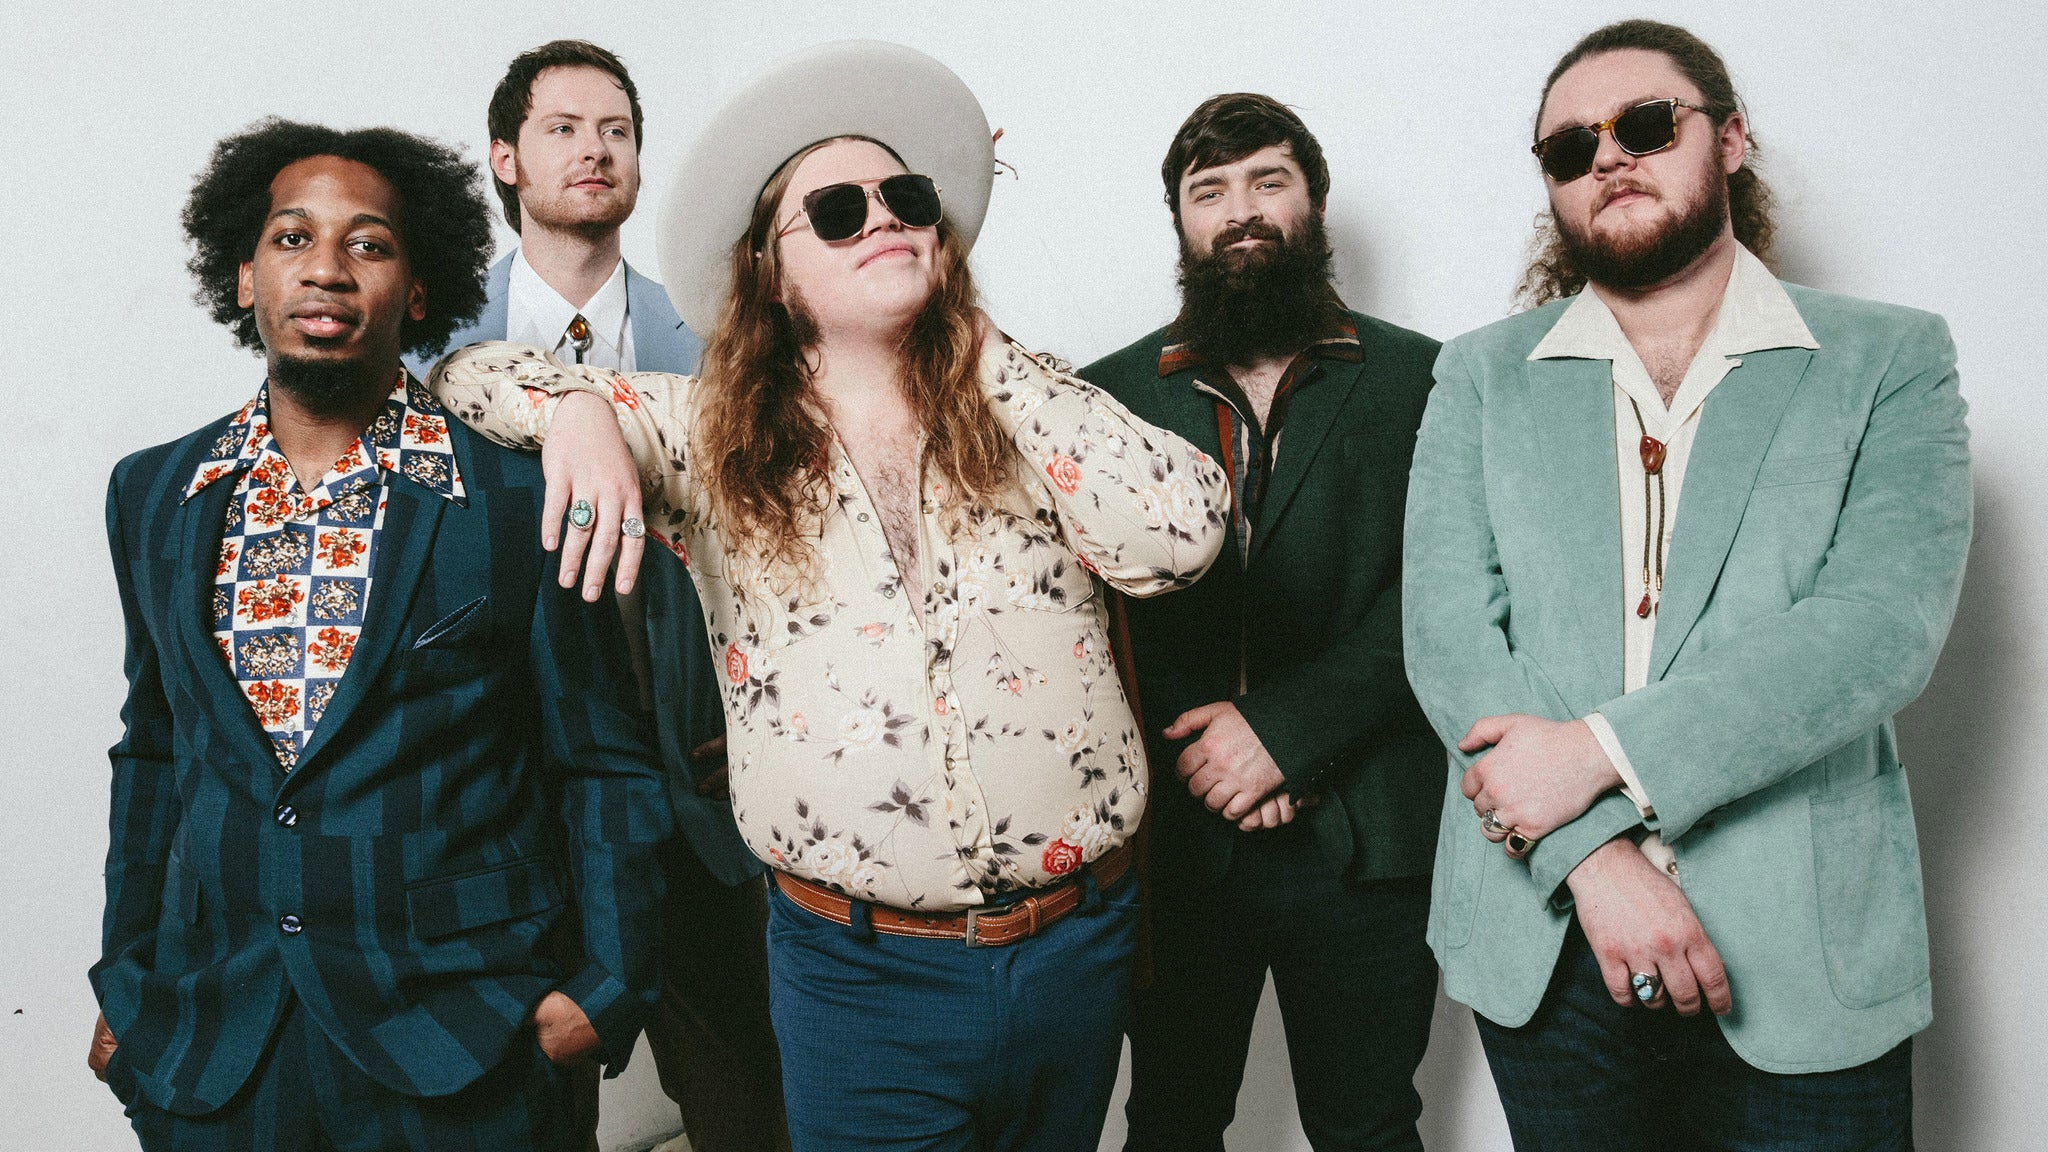 LIVE REVIEW: The Marcus King Band delivers a show-stopping set in Grand Rapids